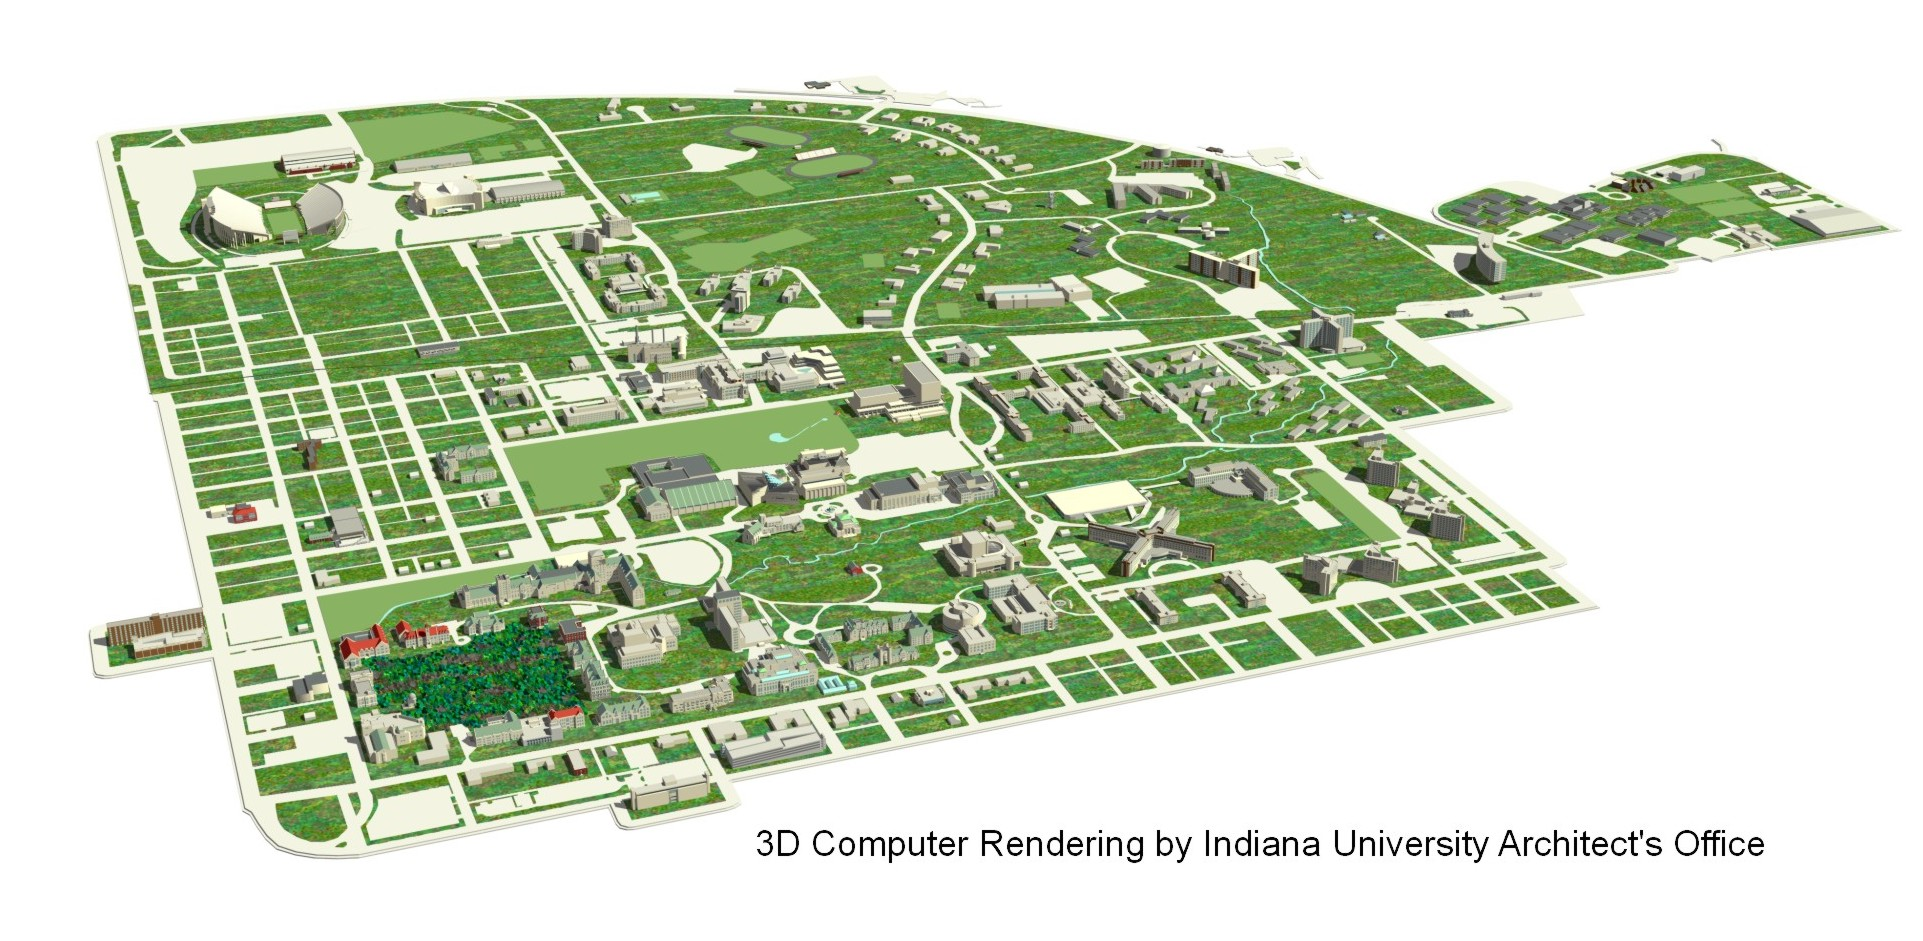 Dell Campus Map | dyslexiatips on indiana university education, indiana university campus clock, indiana university residence halls, suny downstate campus map, dana-farber cancer institute campus map, indiana university bloomington campus, u pitt campus map, indiana state university map, berklee college campus map, unt health science center campus map, indiana university campus desktop wallpaper, iub map, iu map, metropolitan state college campus map, national institutes of health campus map, indiana university logo, horry georgetown technical college campus map, indiana university building map, bethany college campus map, indiana university dorms,